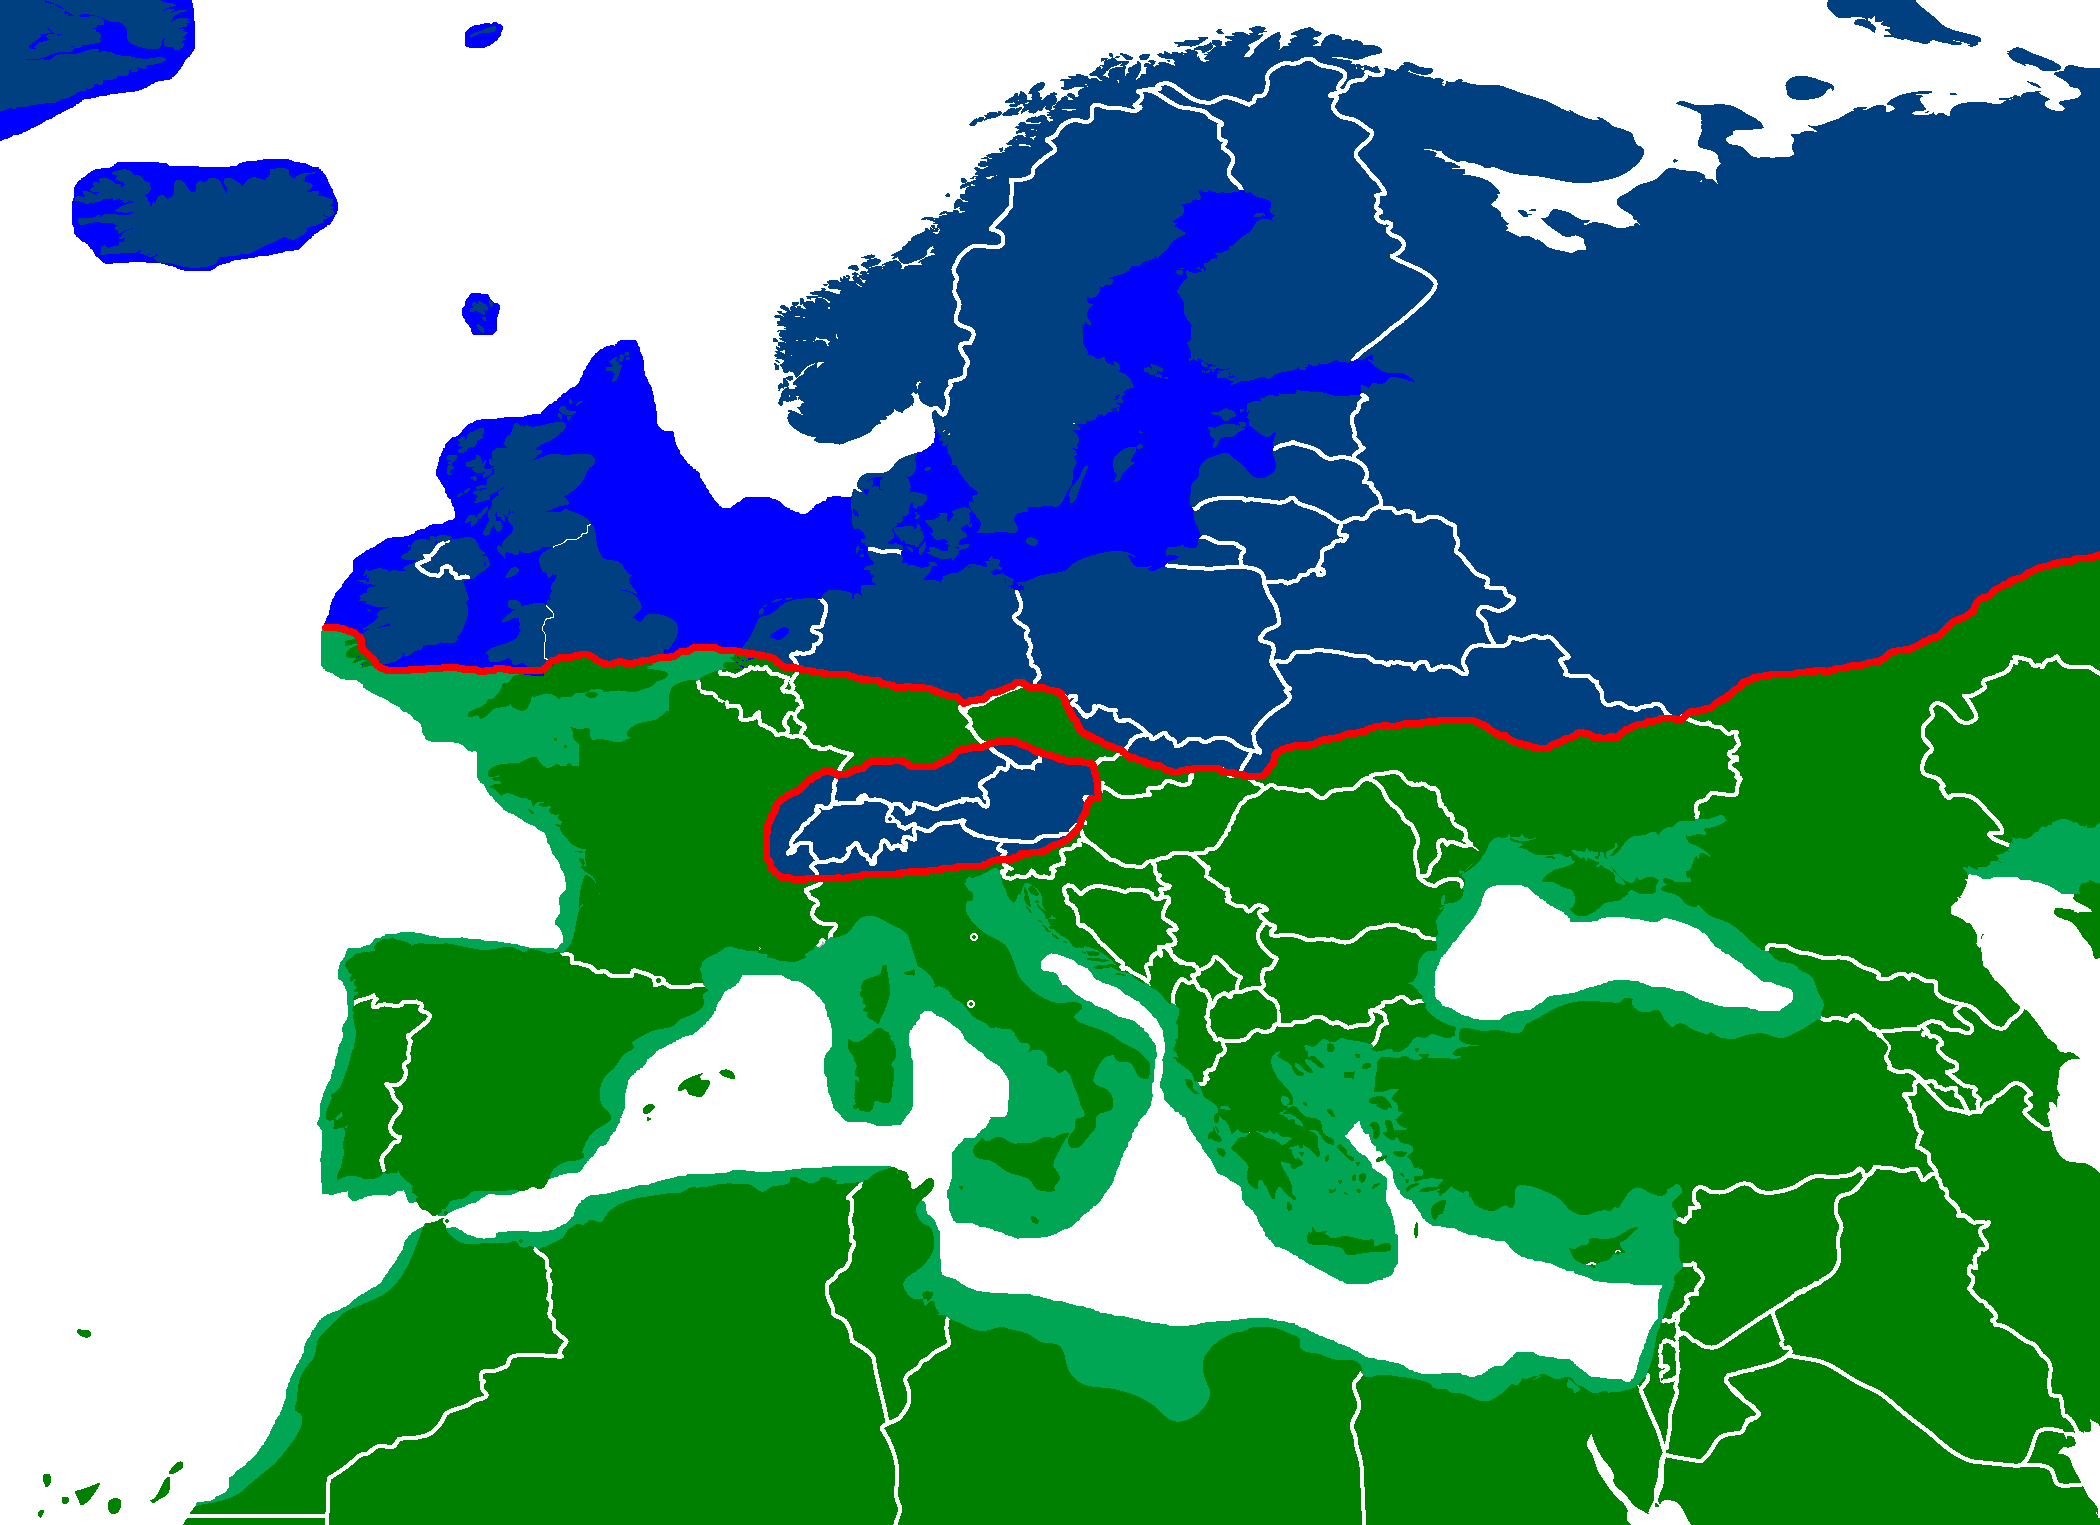 map of ice age europe File:Ice Age Europe map.png   Wikimedia Commons